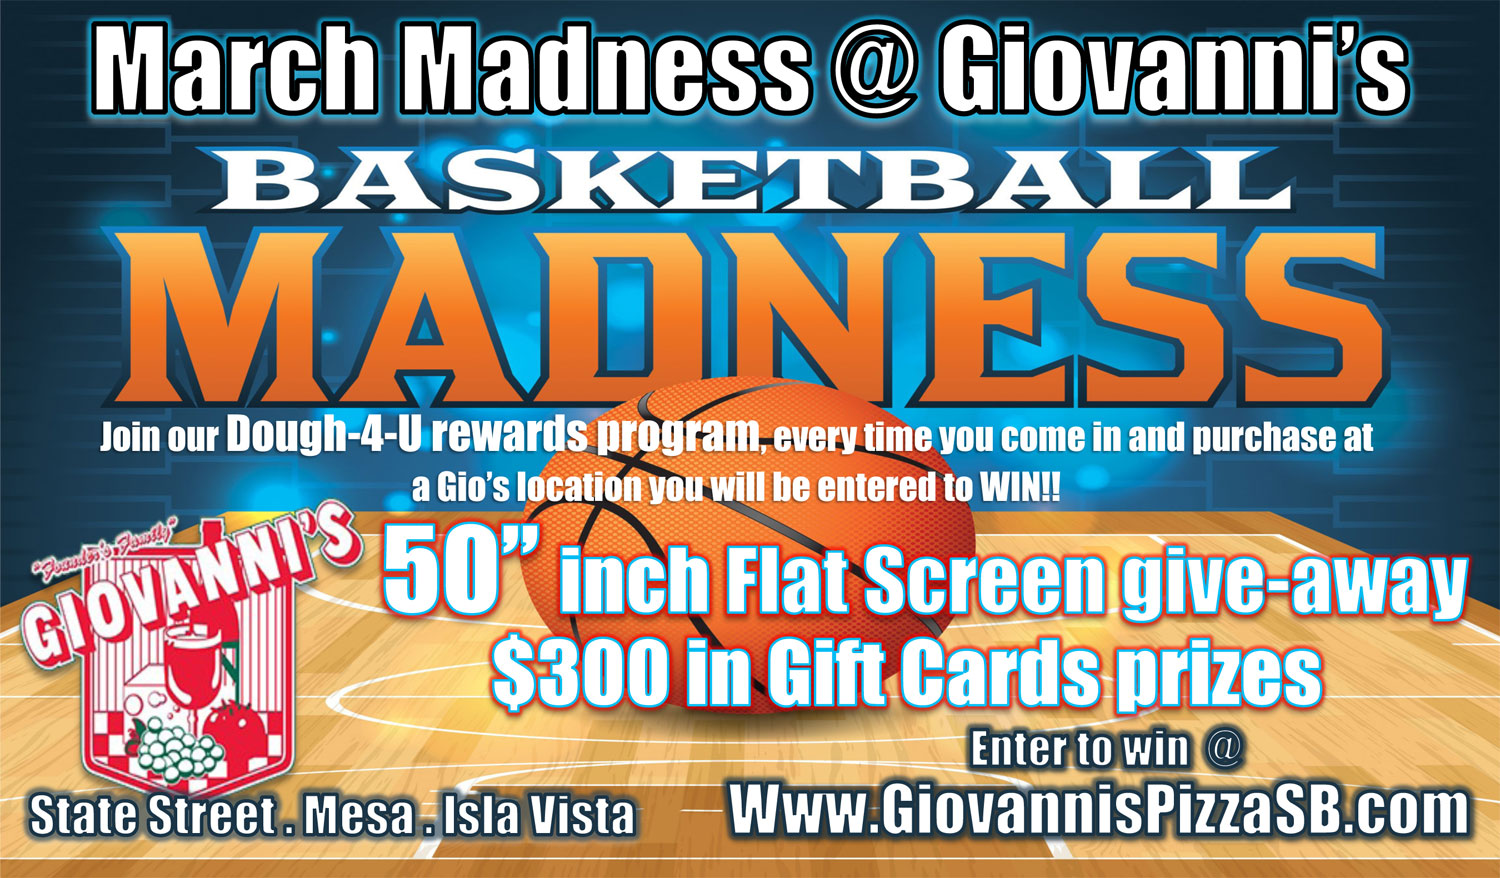 Giovanni's Pizza March Madness